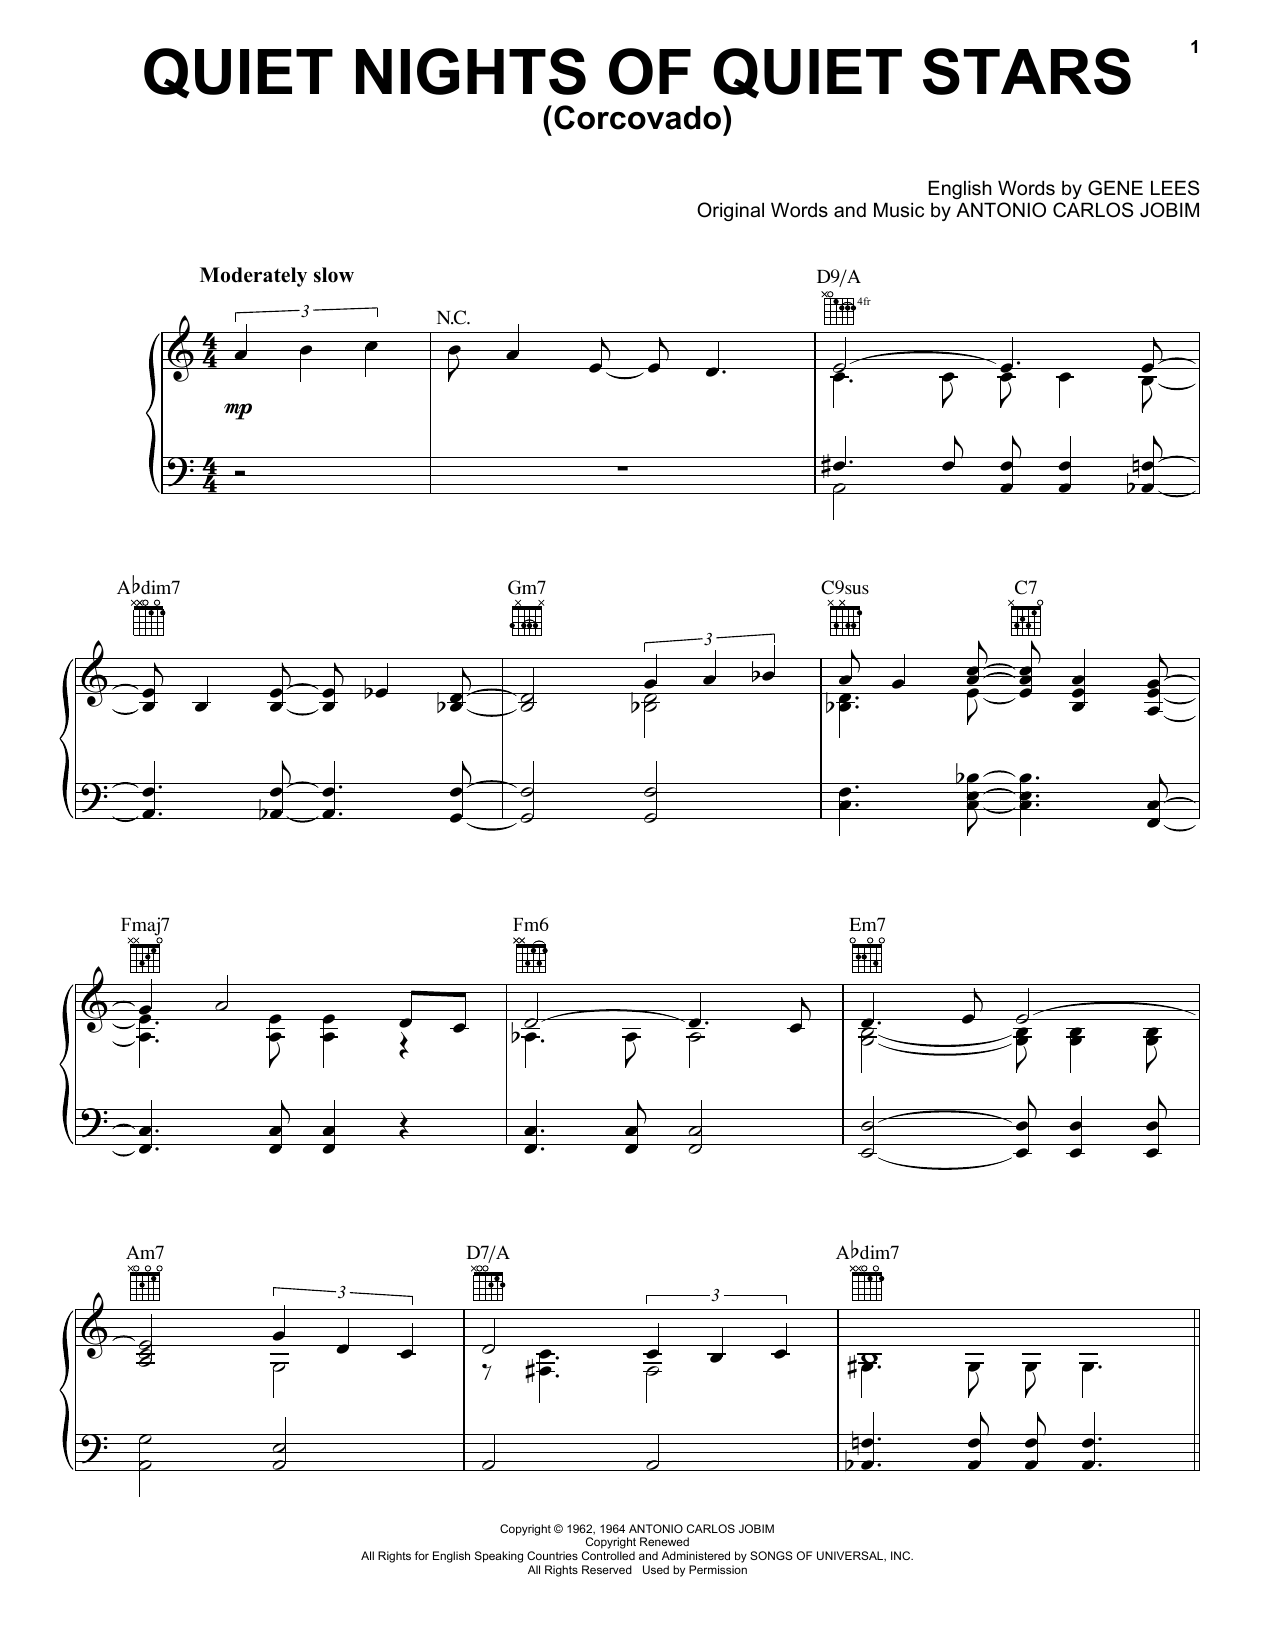 Antonio Carlos Jobim Quiet Nights Of Quiet Stars (Corcovado) sheet music preview music notes and score for Guitar Tab including 4 page(s)